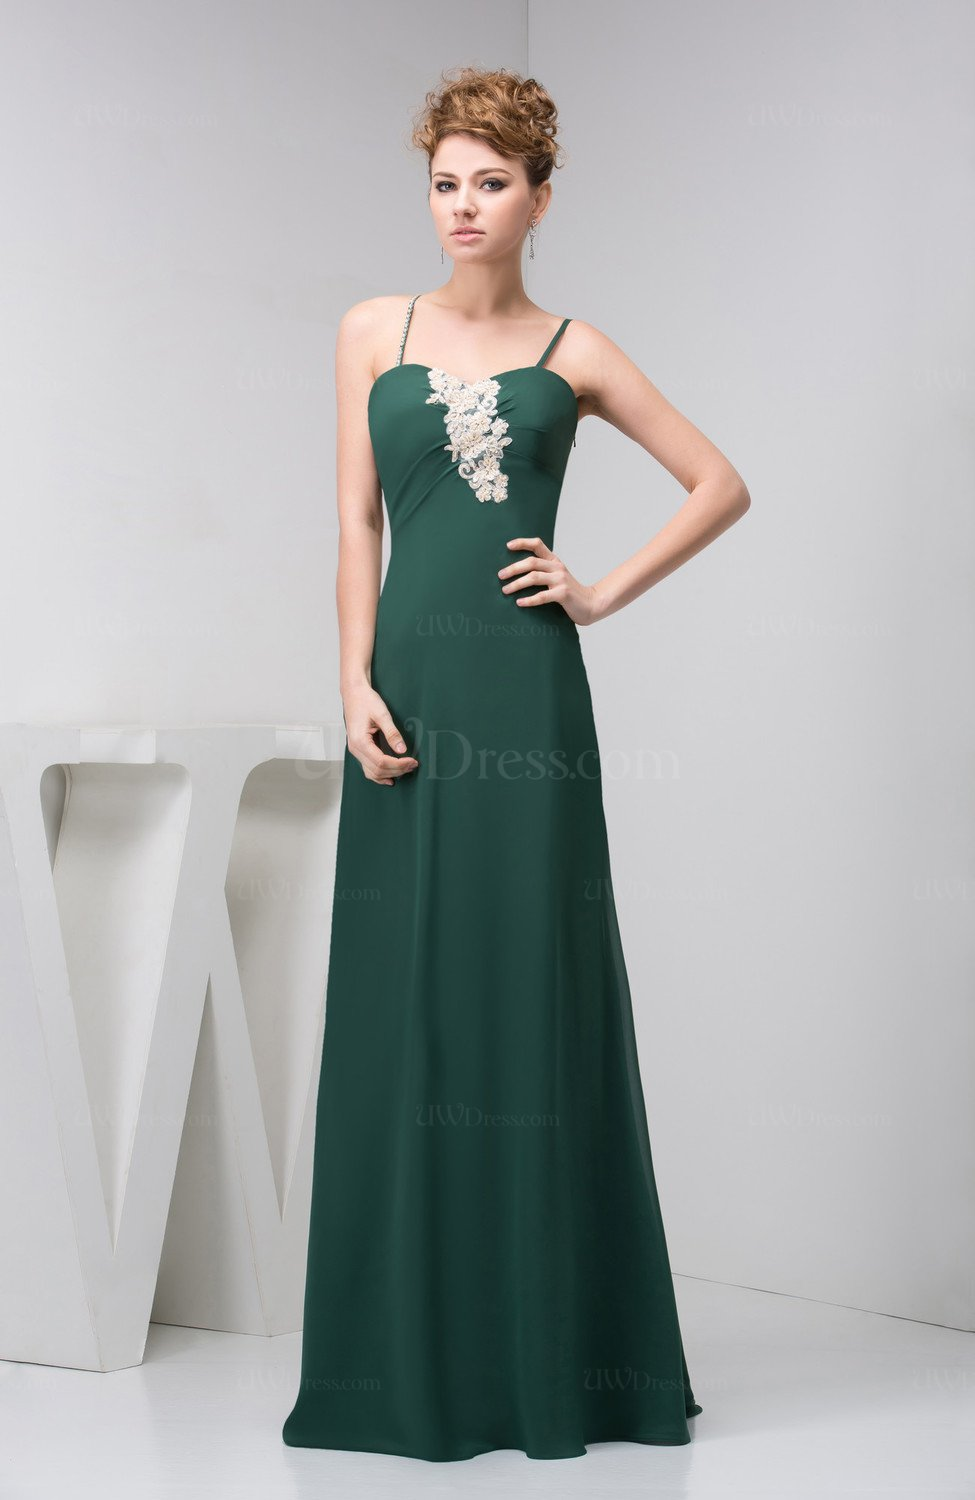 Hunter green inexpensive wedding guest dress unique for Cheap wedding dresses for guests